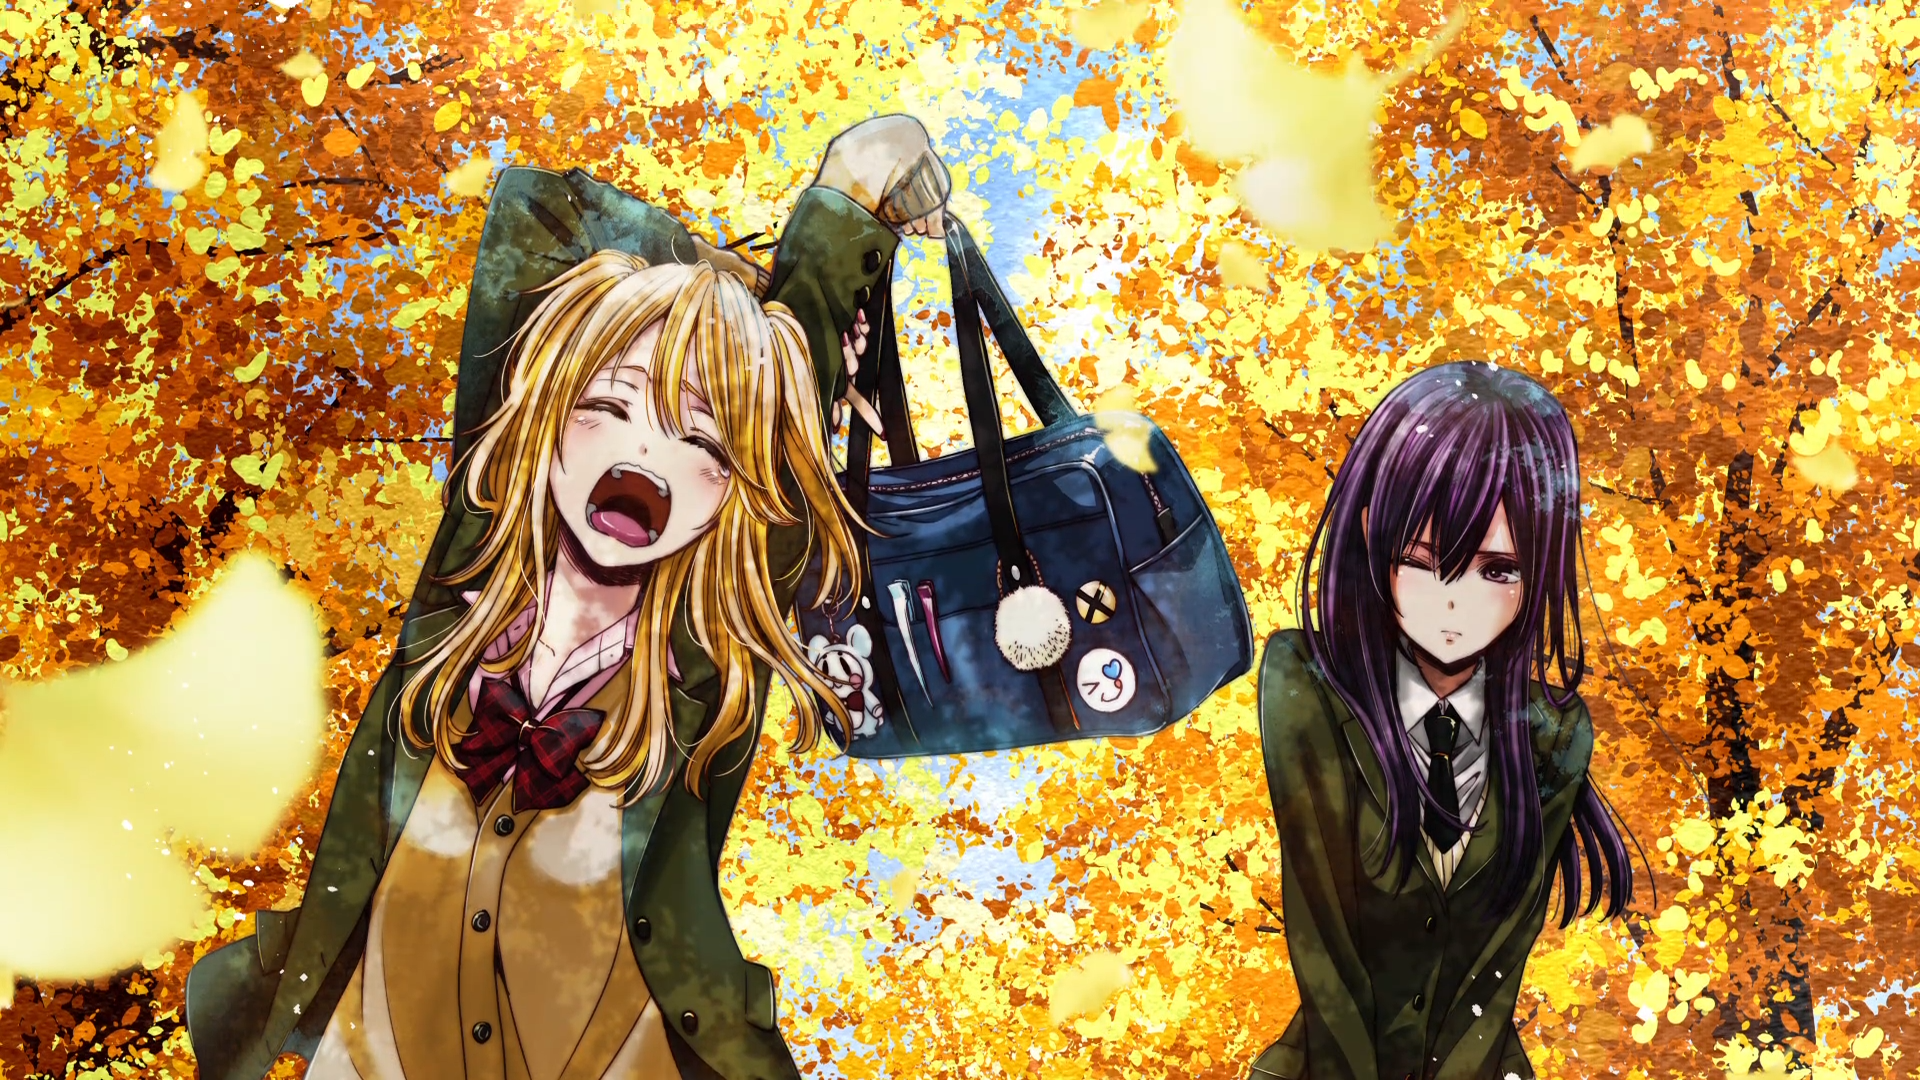 Fall Anime Wallpaper Vocaloid 54 Citrus Hd Wallpapers Background Images Wallpaper Abyss